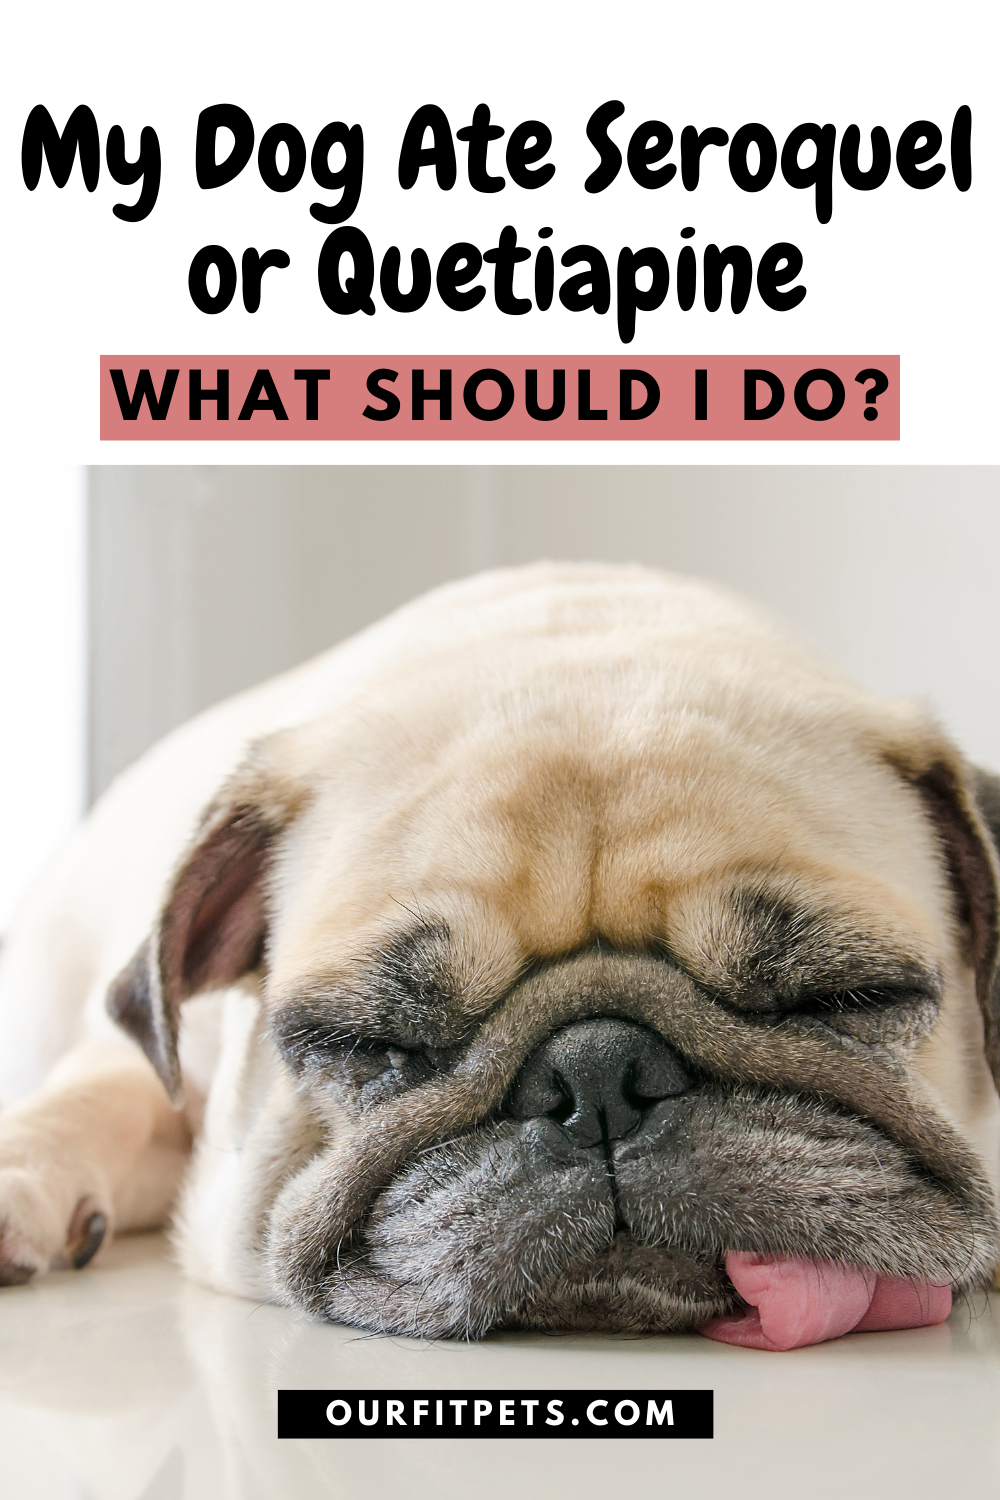 My Dog Ate Seroquel Or Quetiapine What Should I Do Our Fit Pets Sleeping Dogs Dogs Cat Advice